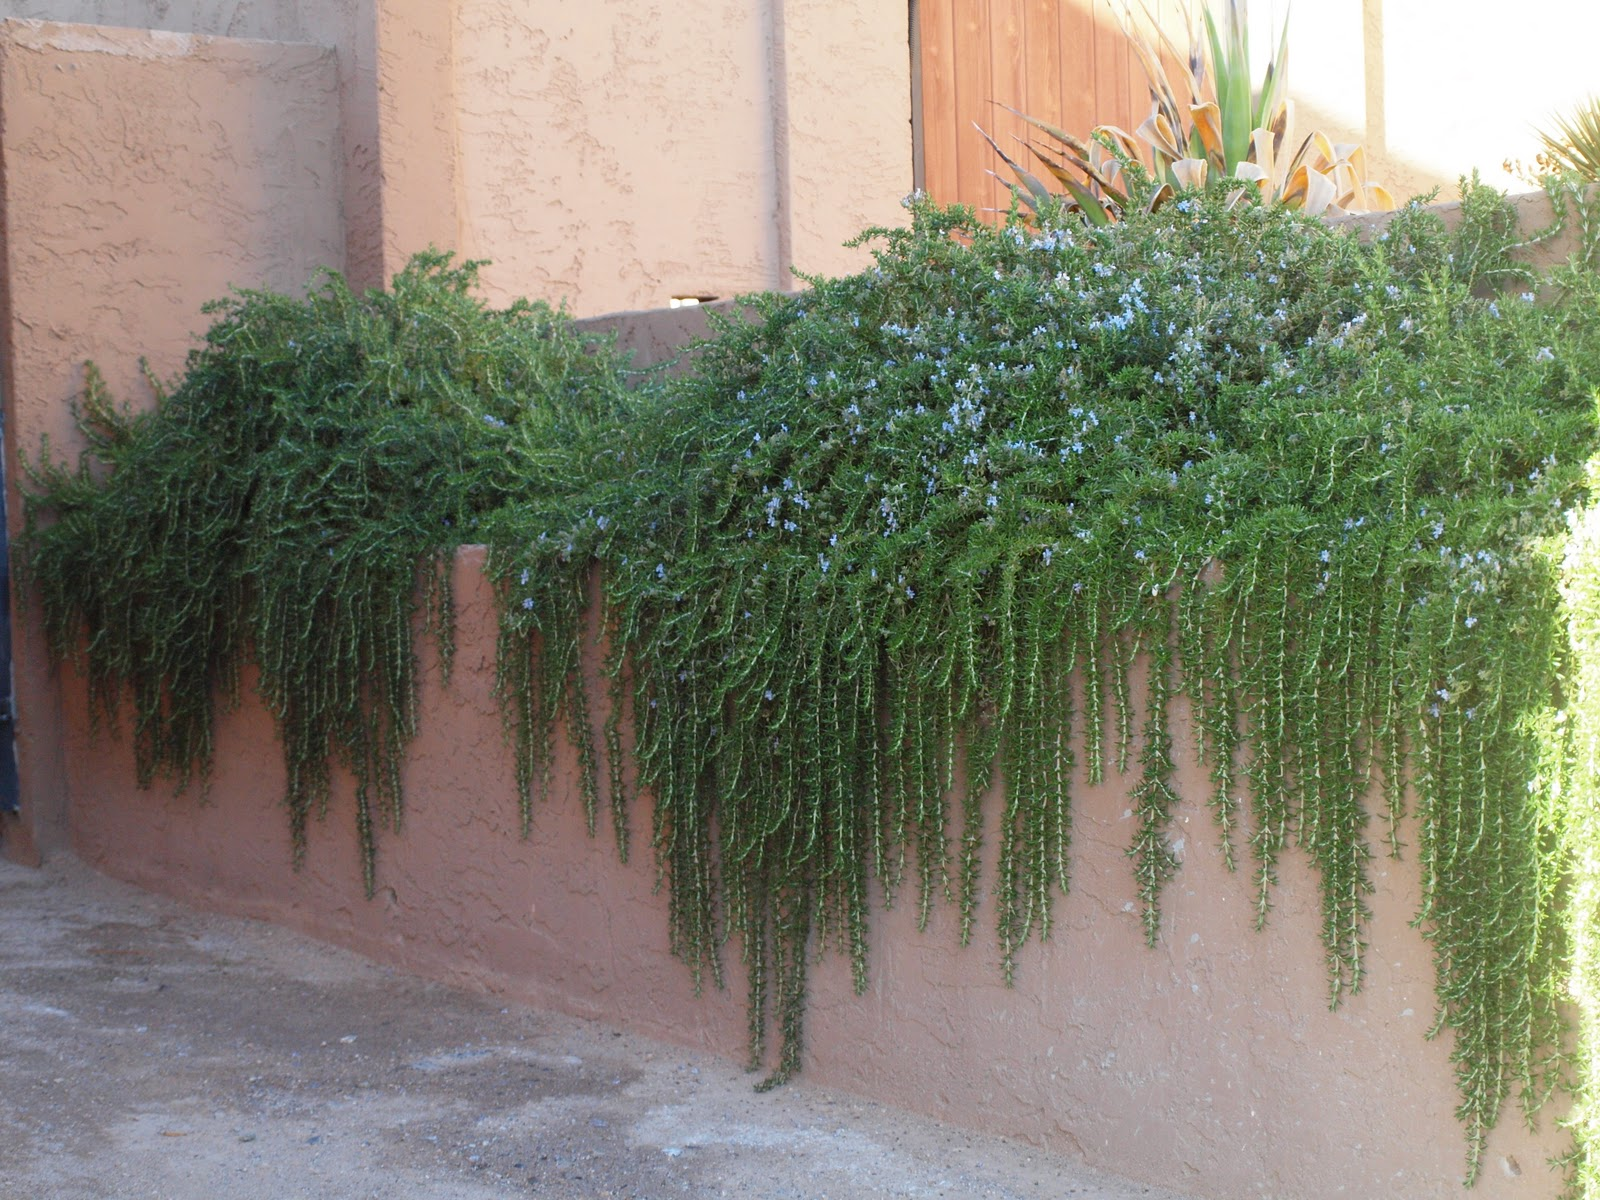 The Sonoran Desert Gardener: Rosemary Trails, Green and Blue